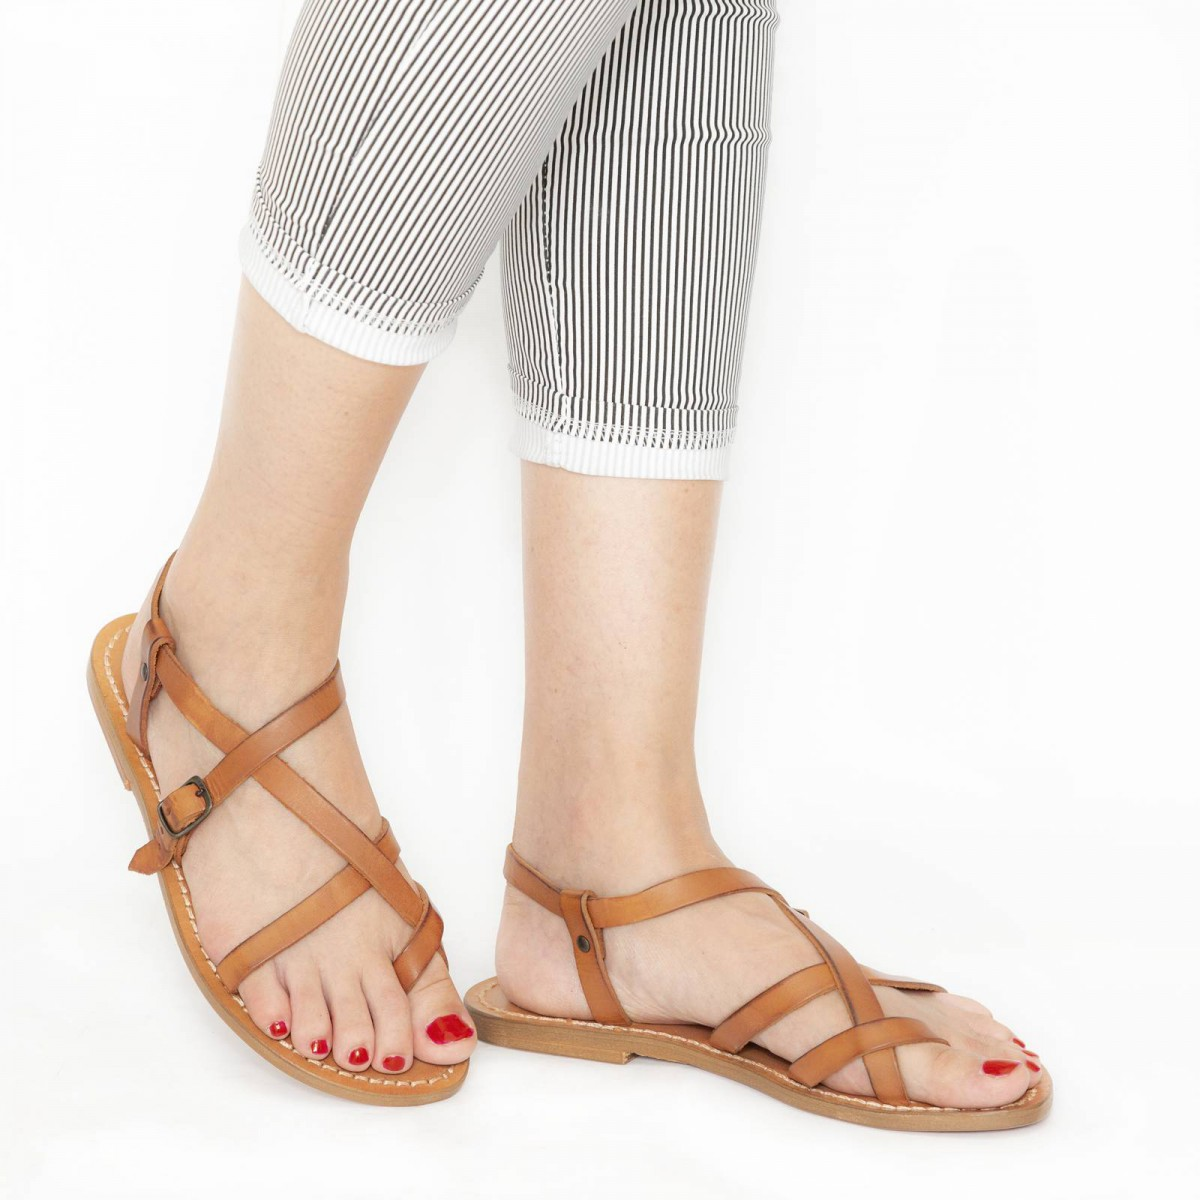 d1e1977113de5 Handmade in Italy womens slave sandals in vintage cuir leather ...